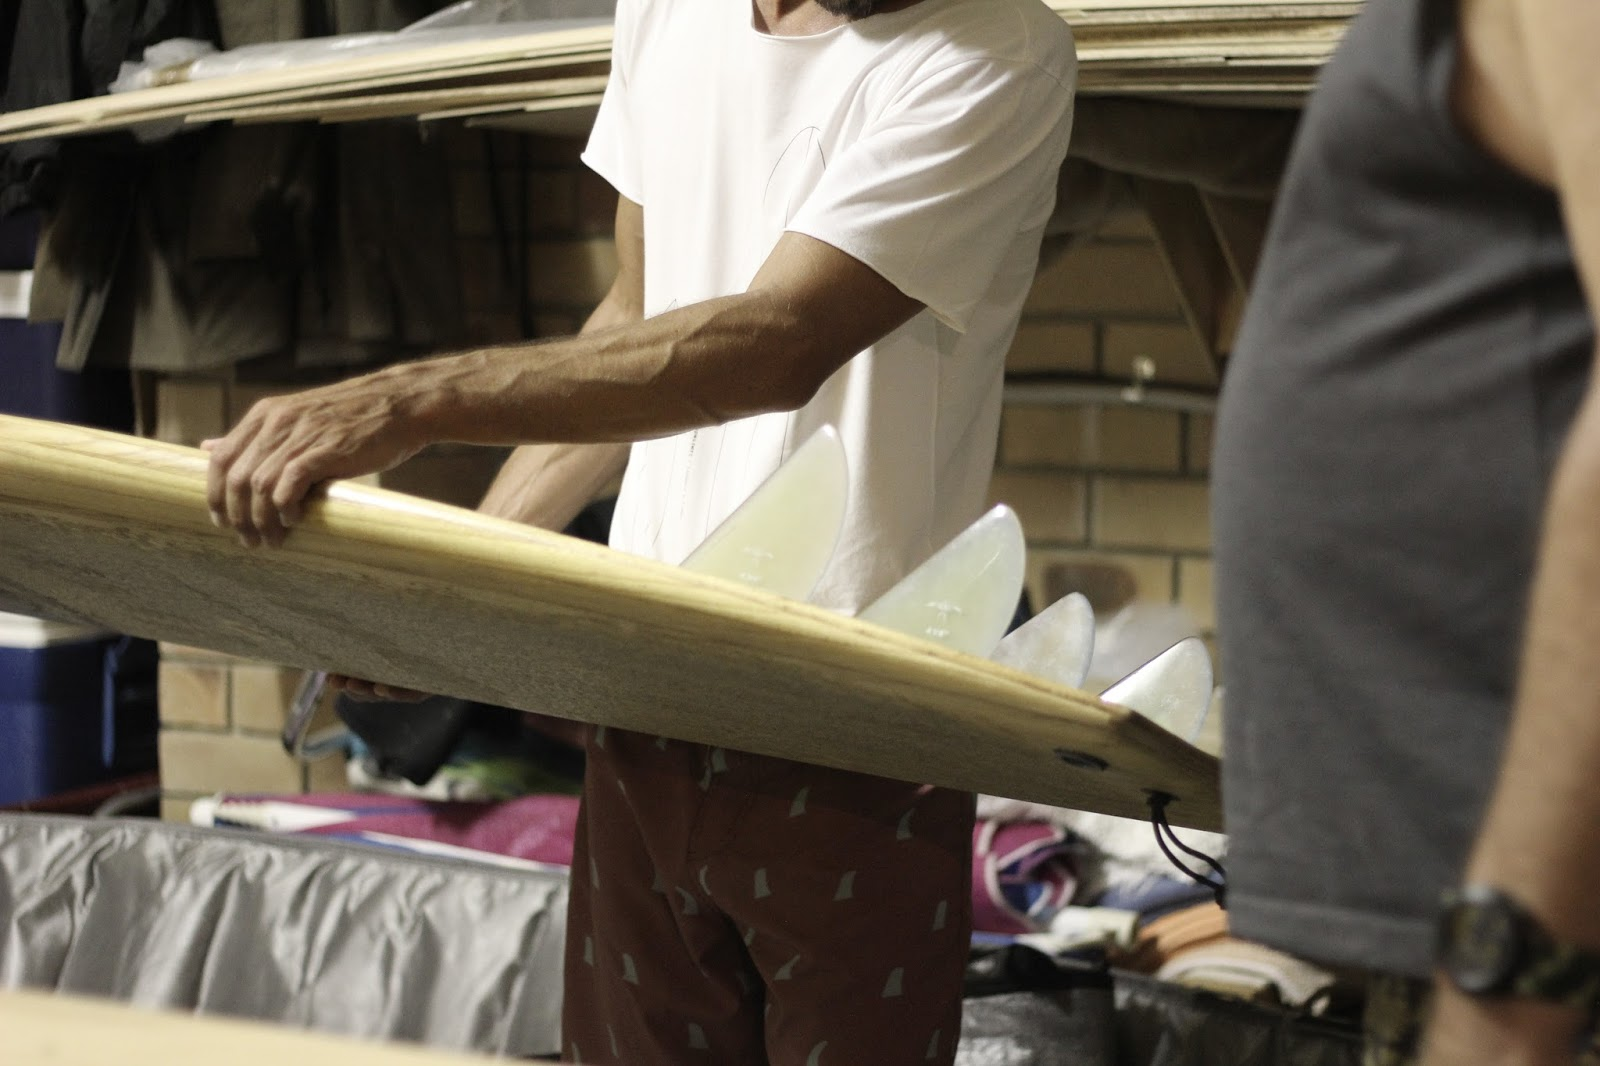 20-03-2016-australia-siebert-surfboards-04